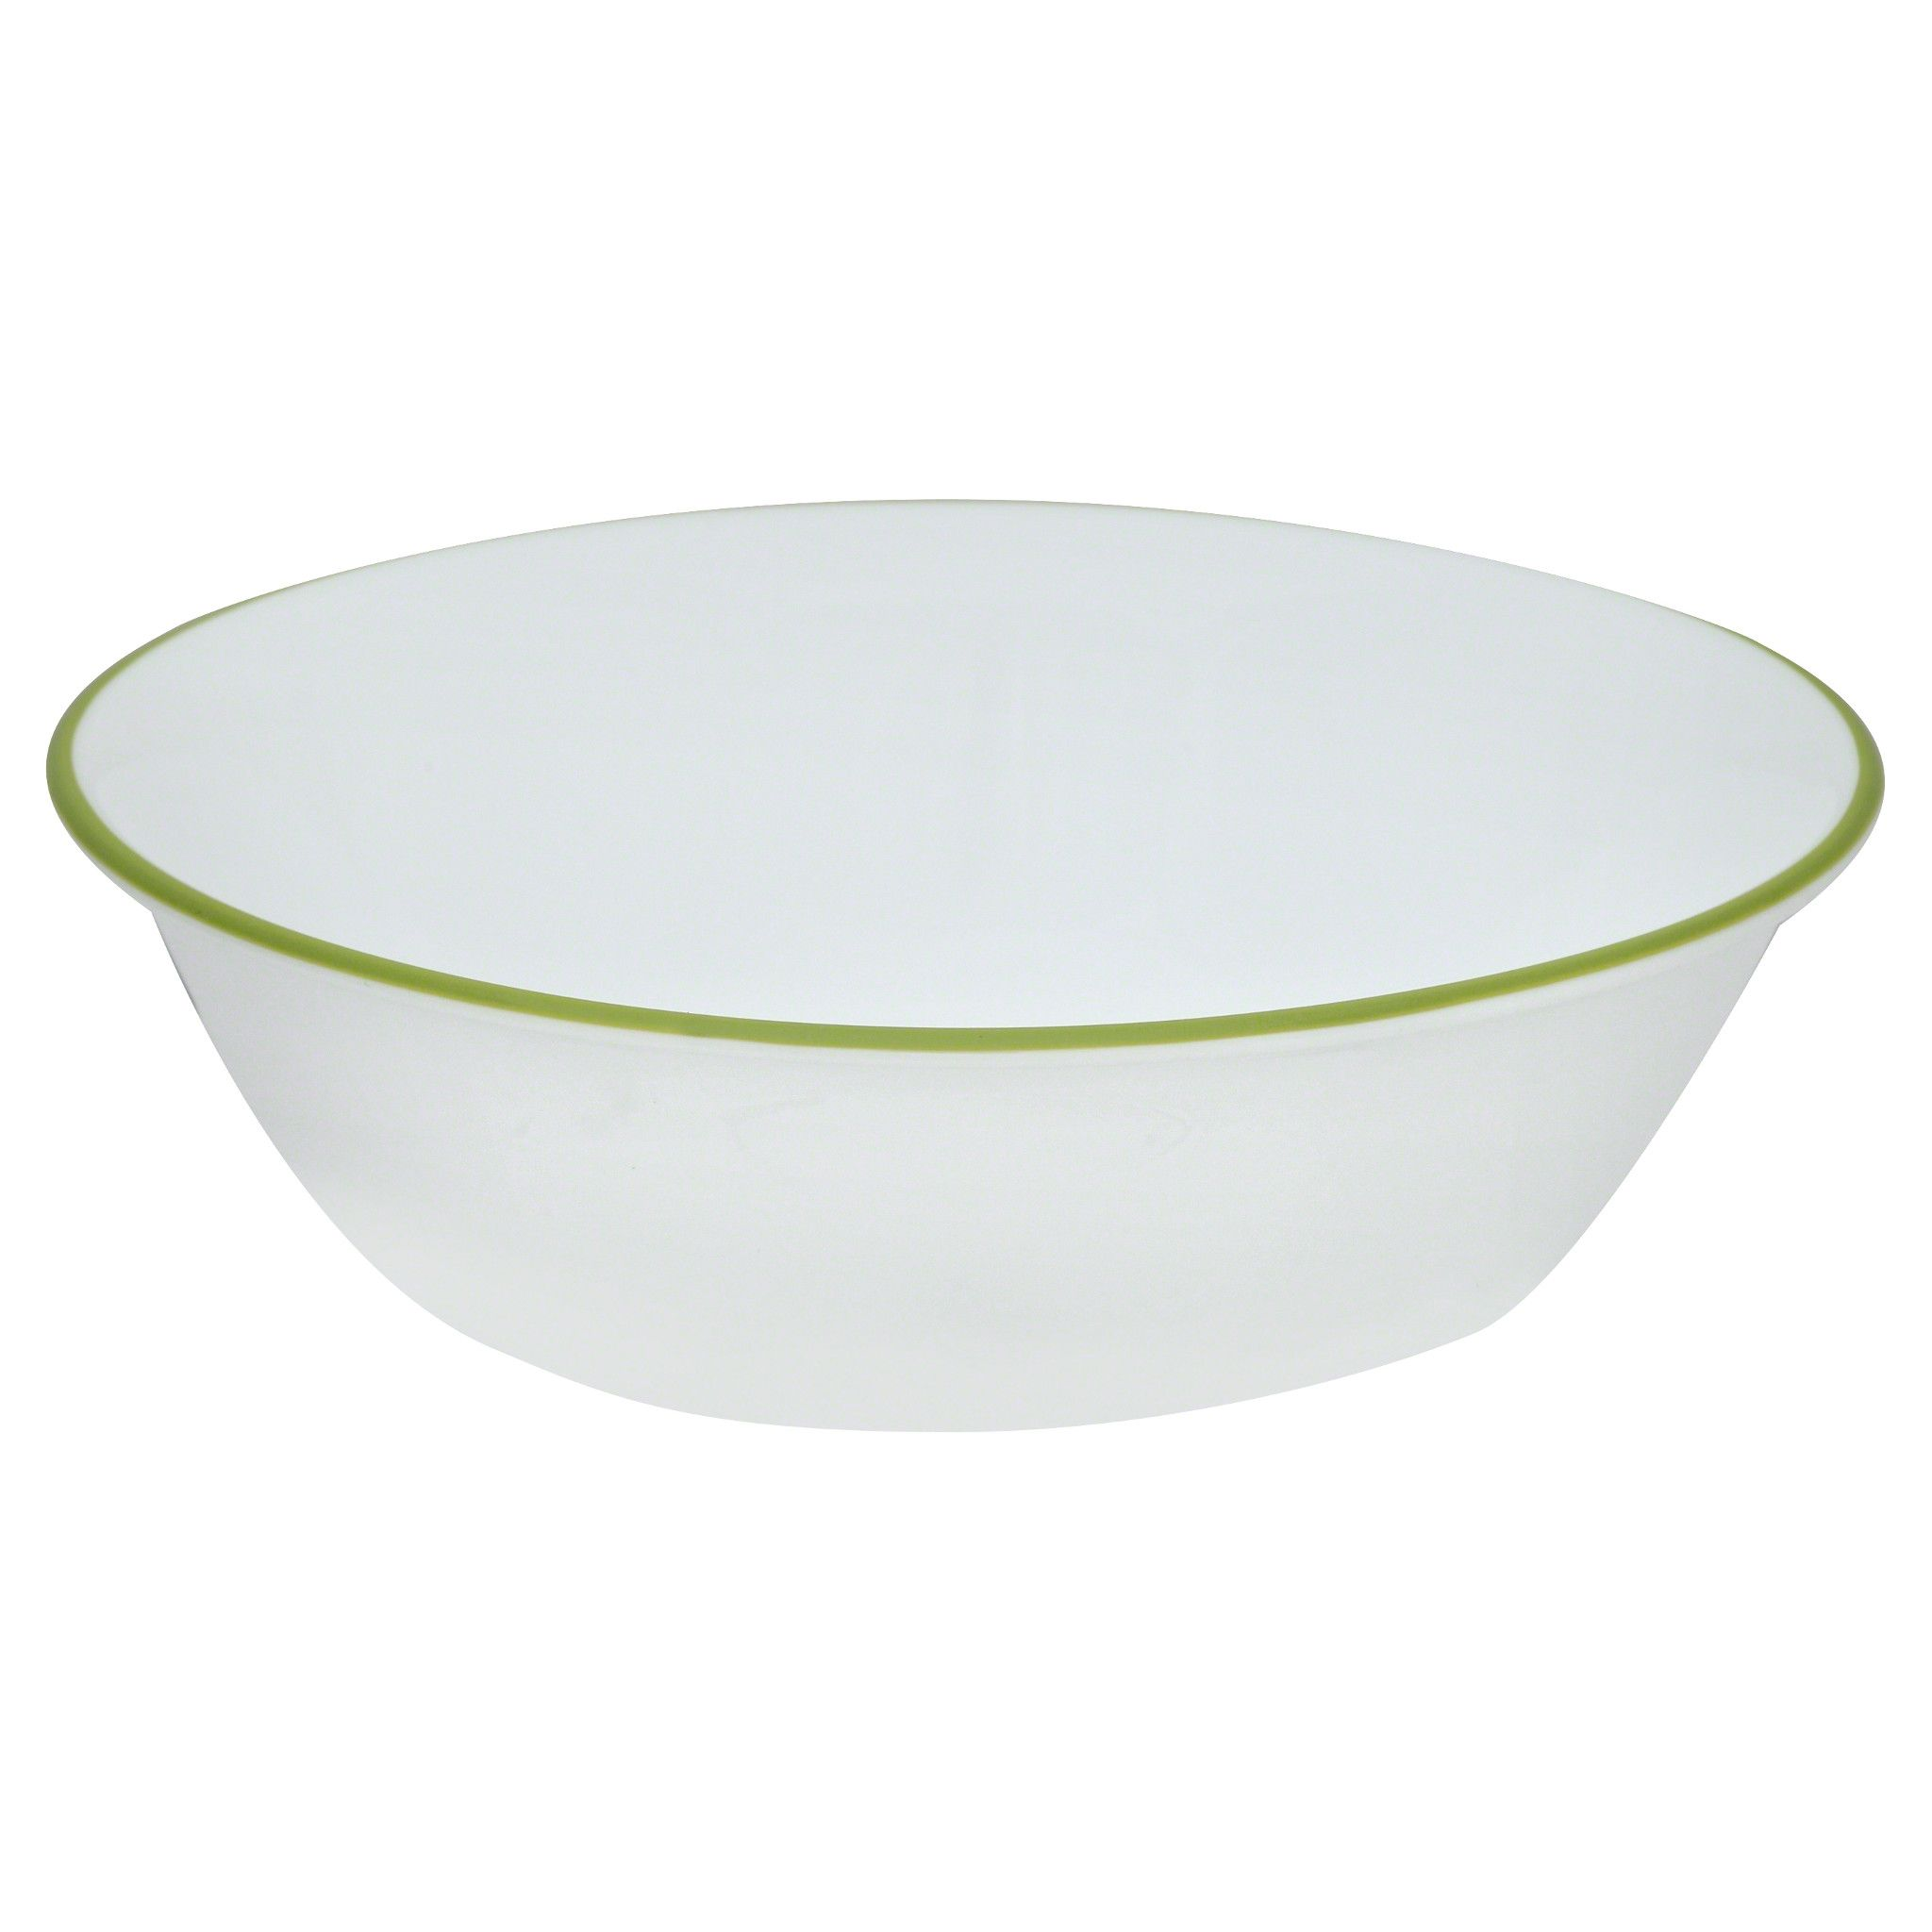 Corelle_Kalypso_18oz_Cereal_Bowl